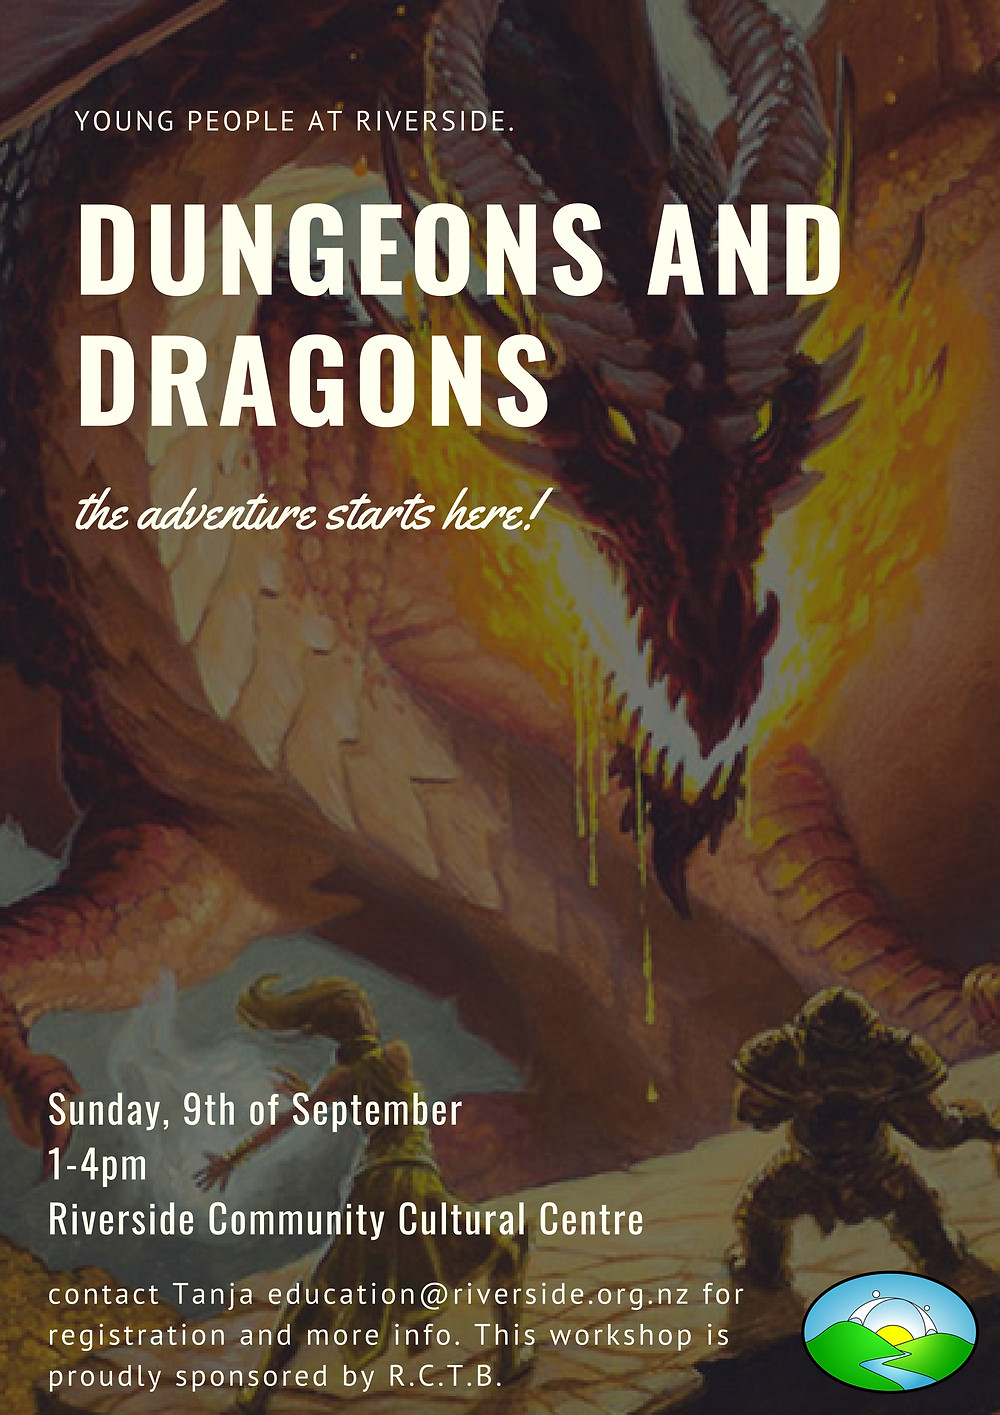 dungeons and dragons event poster